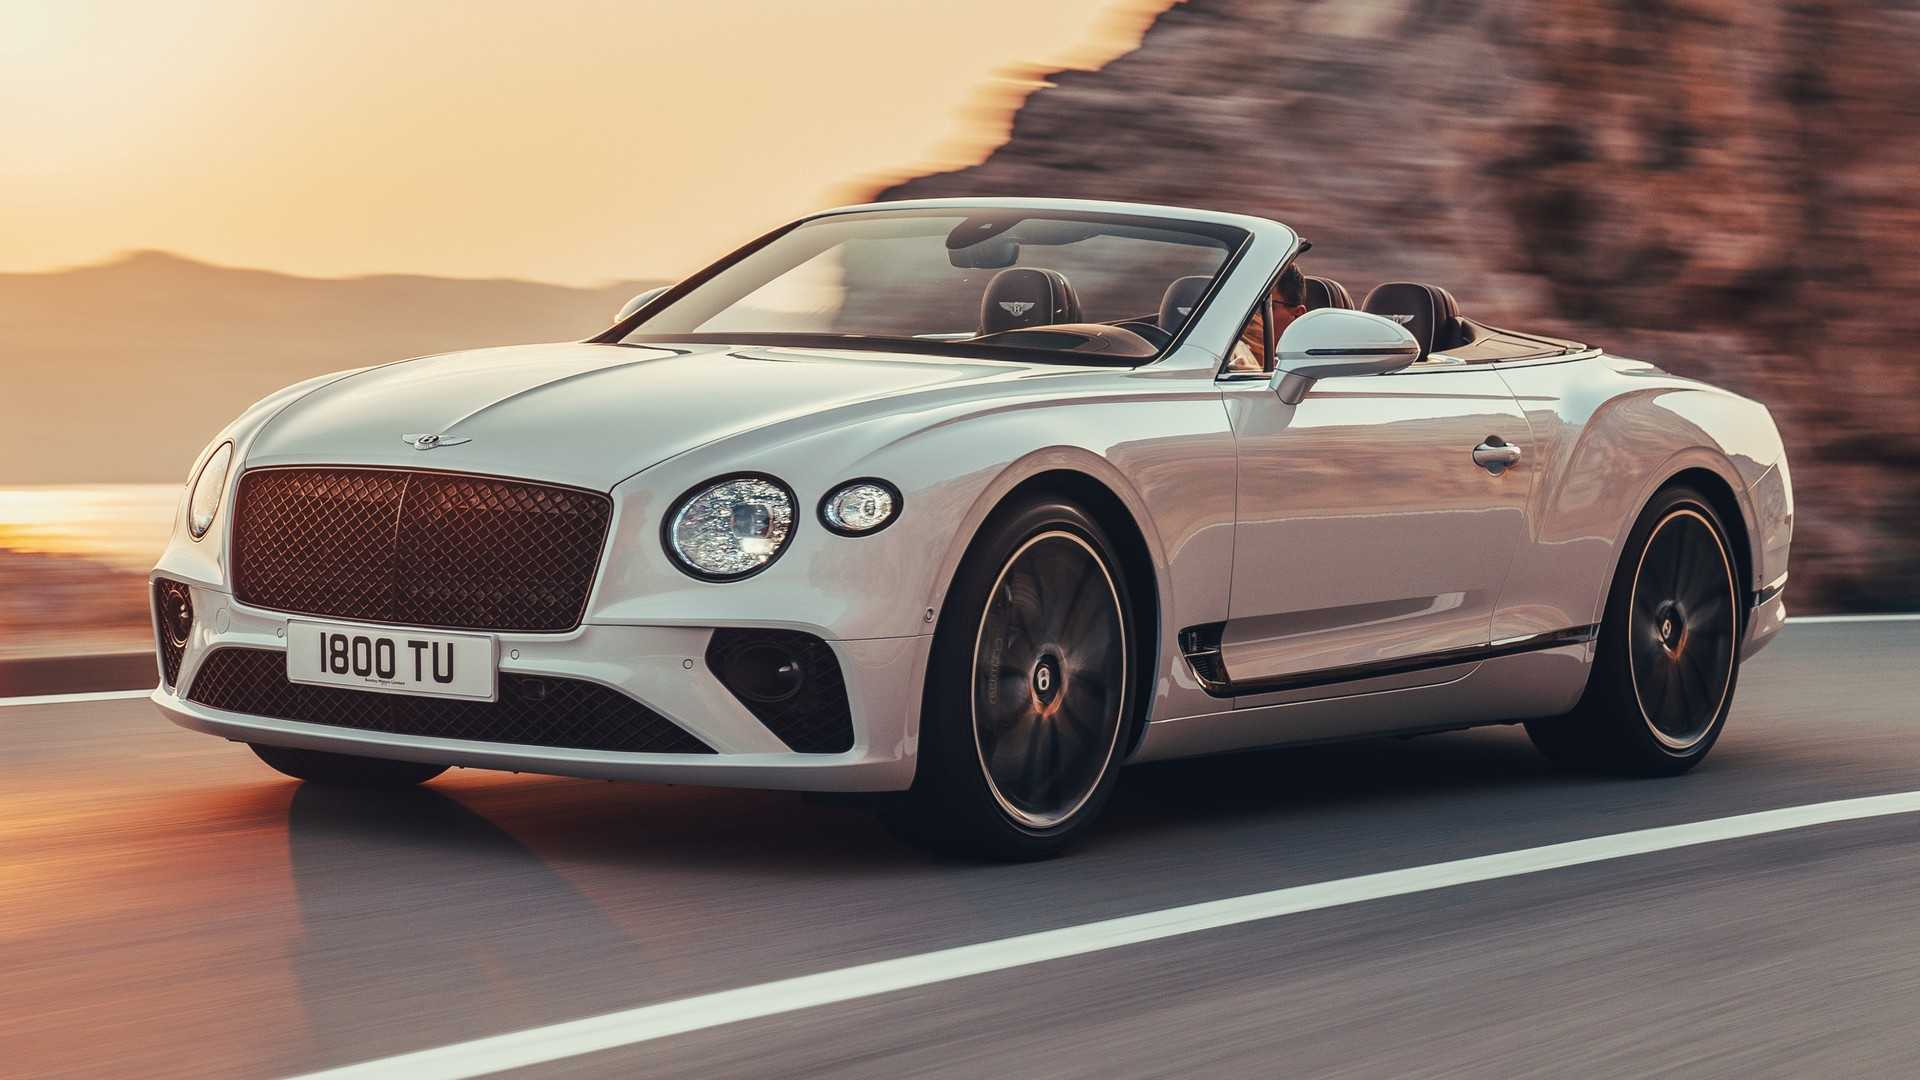 34 Best 2019 Bentley Gt Spesification